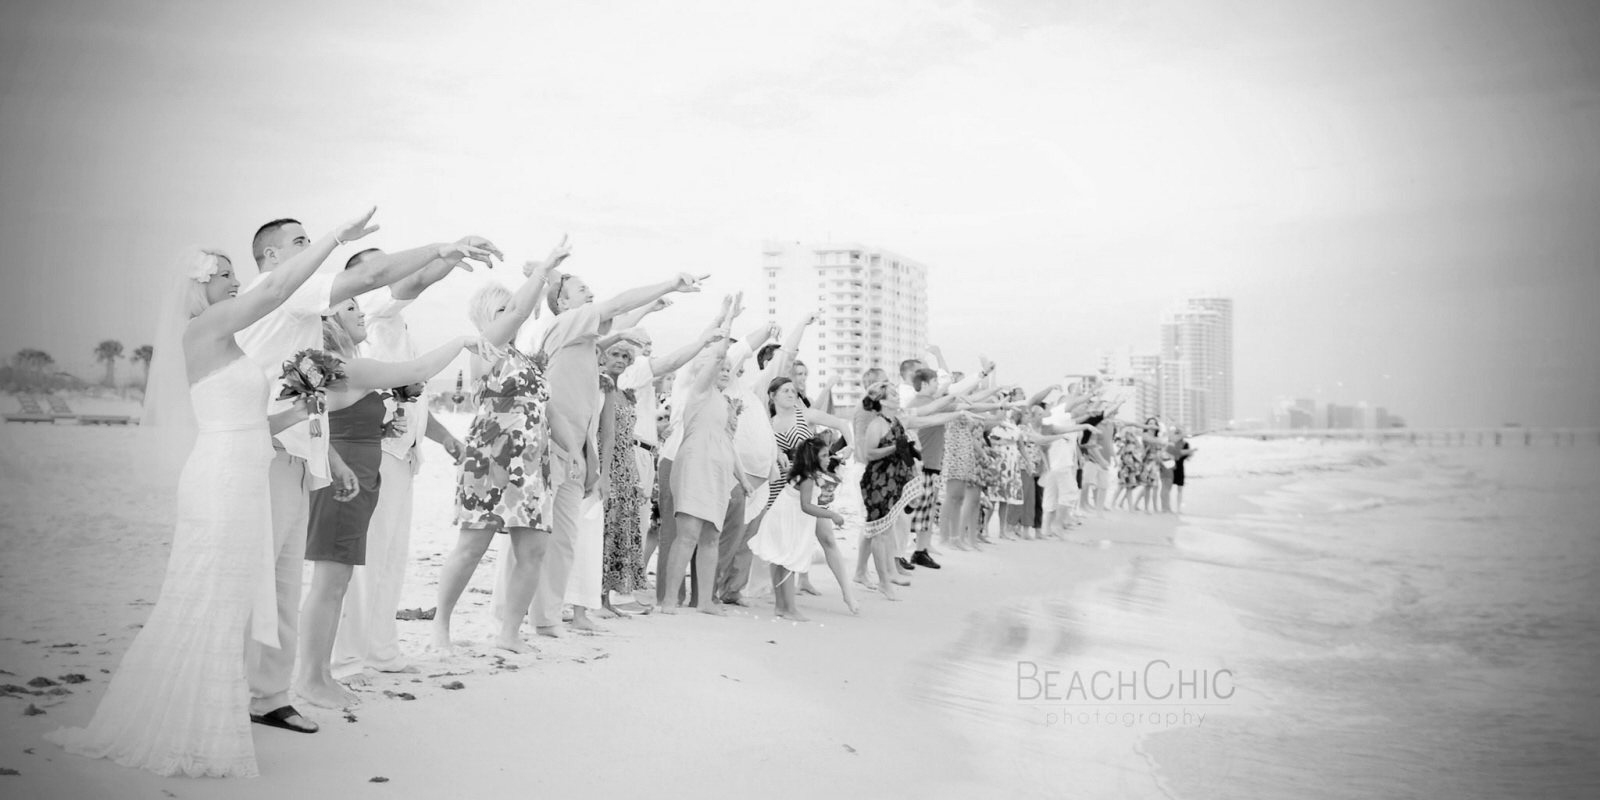 Beach Chic Photography